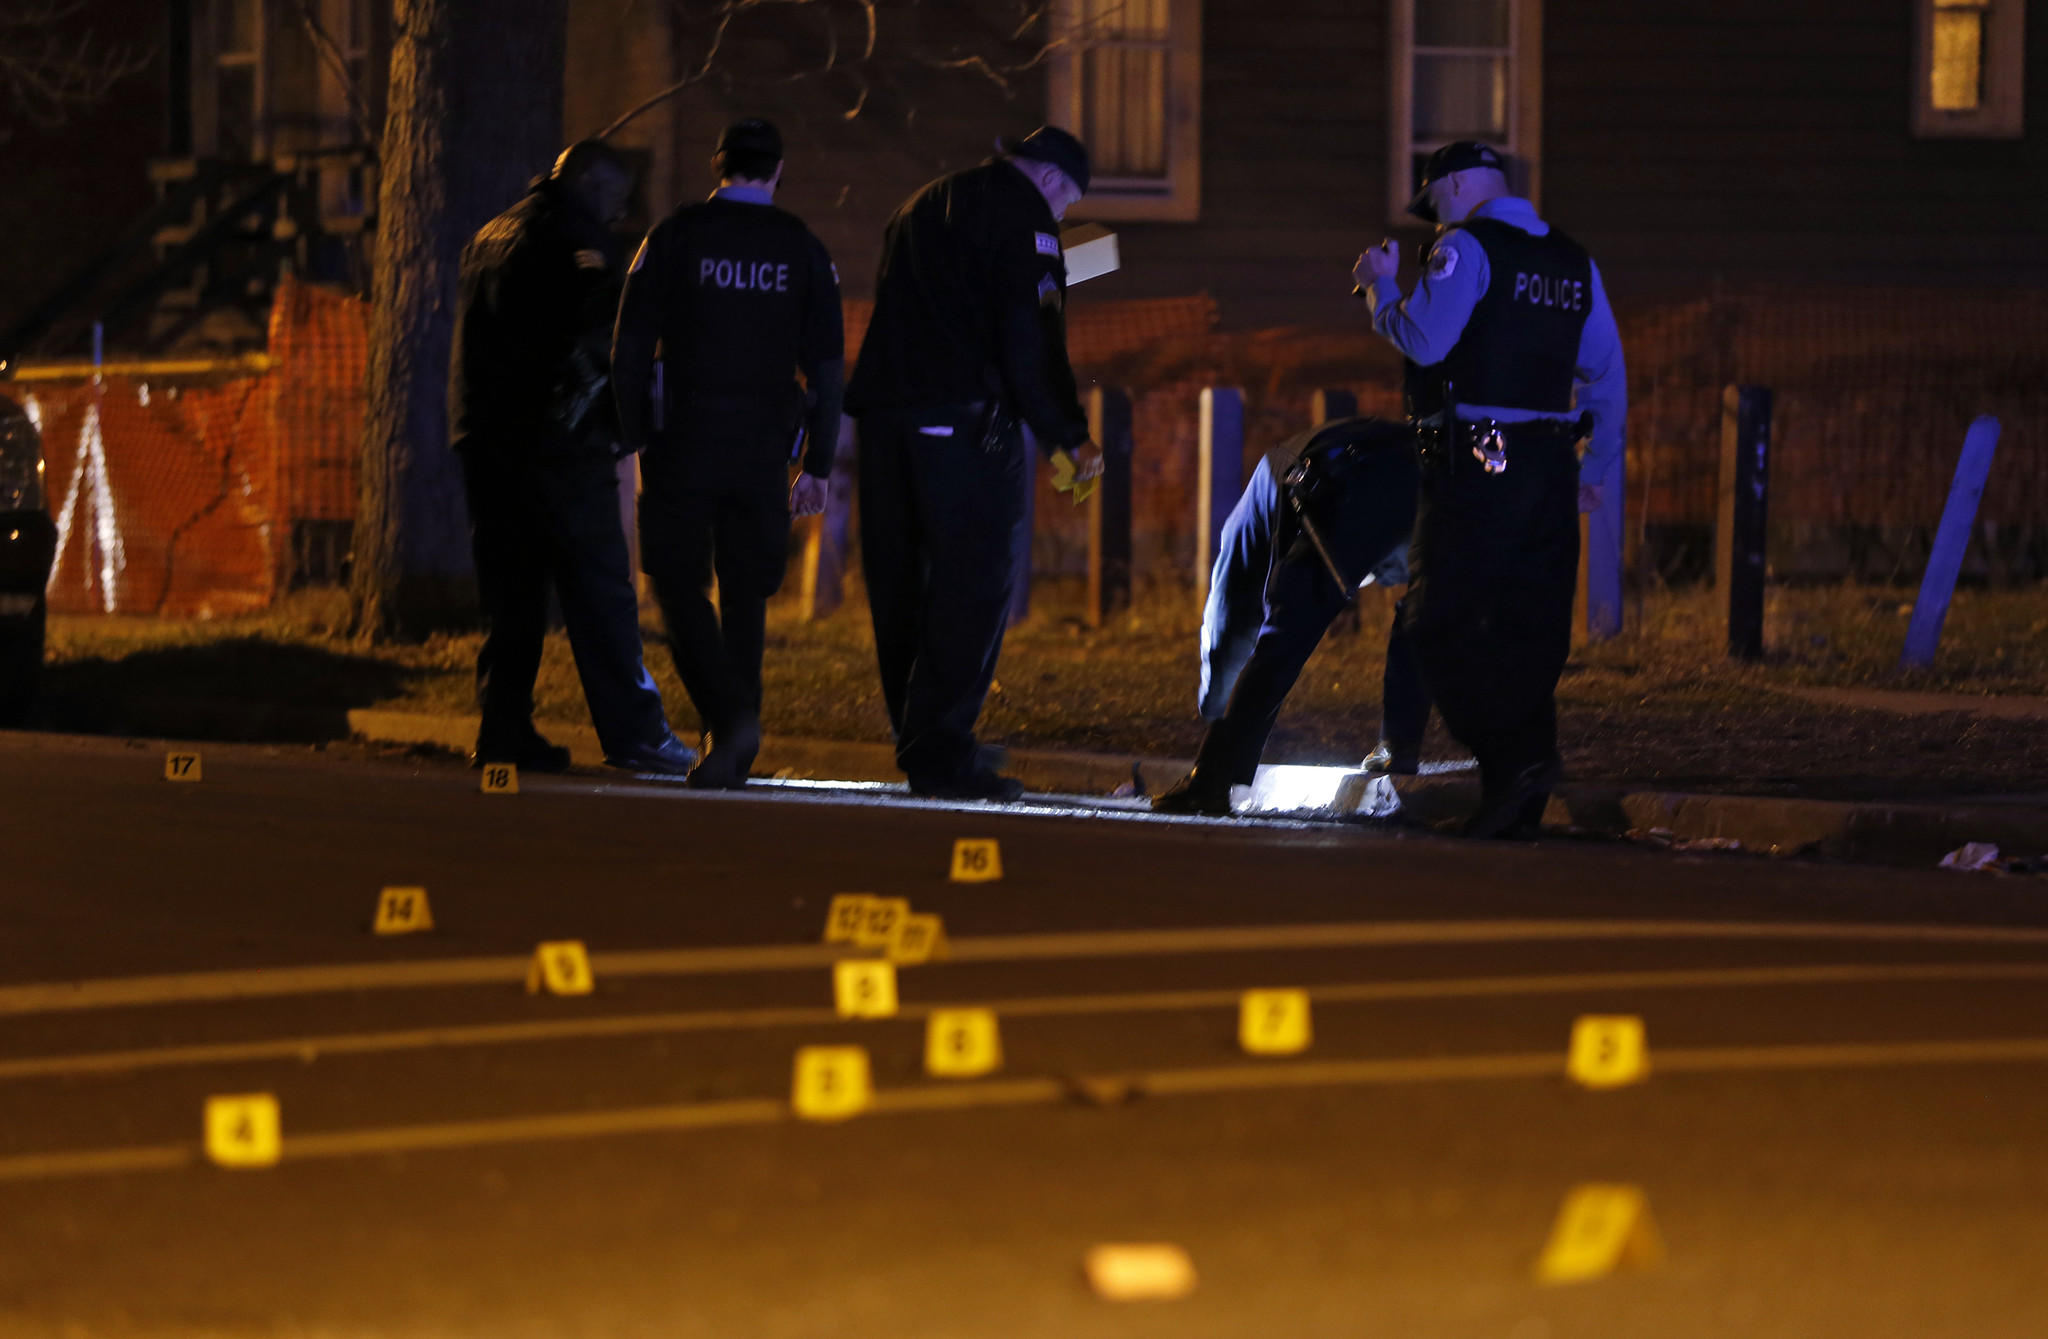 Chicago police investigate a shooting on the 5600 block of S. Elizabeth Street in Chicago.